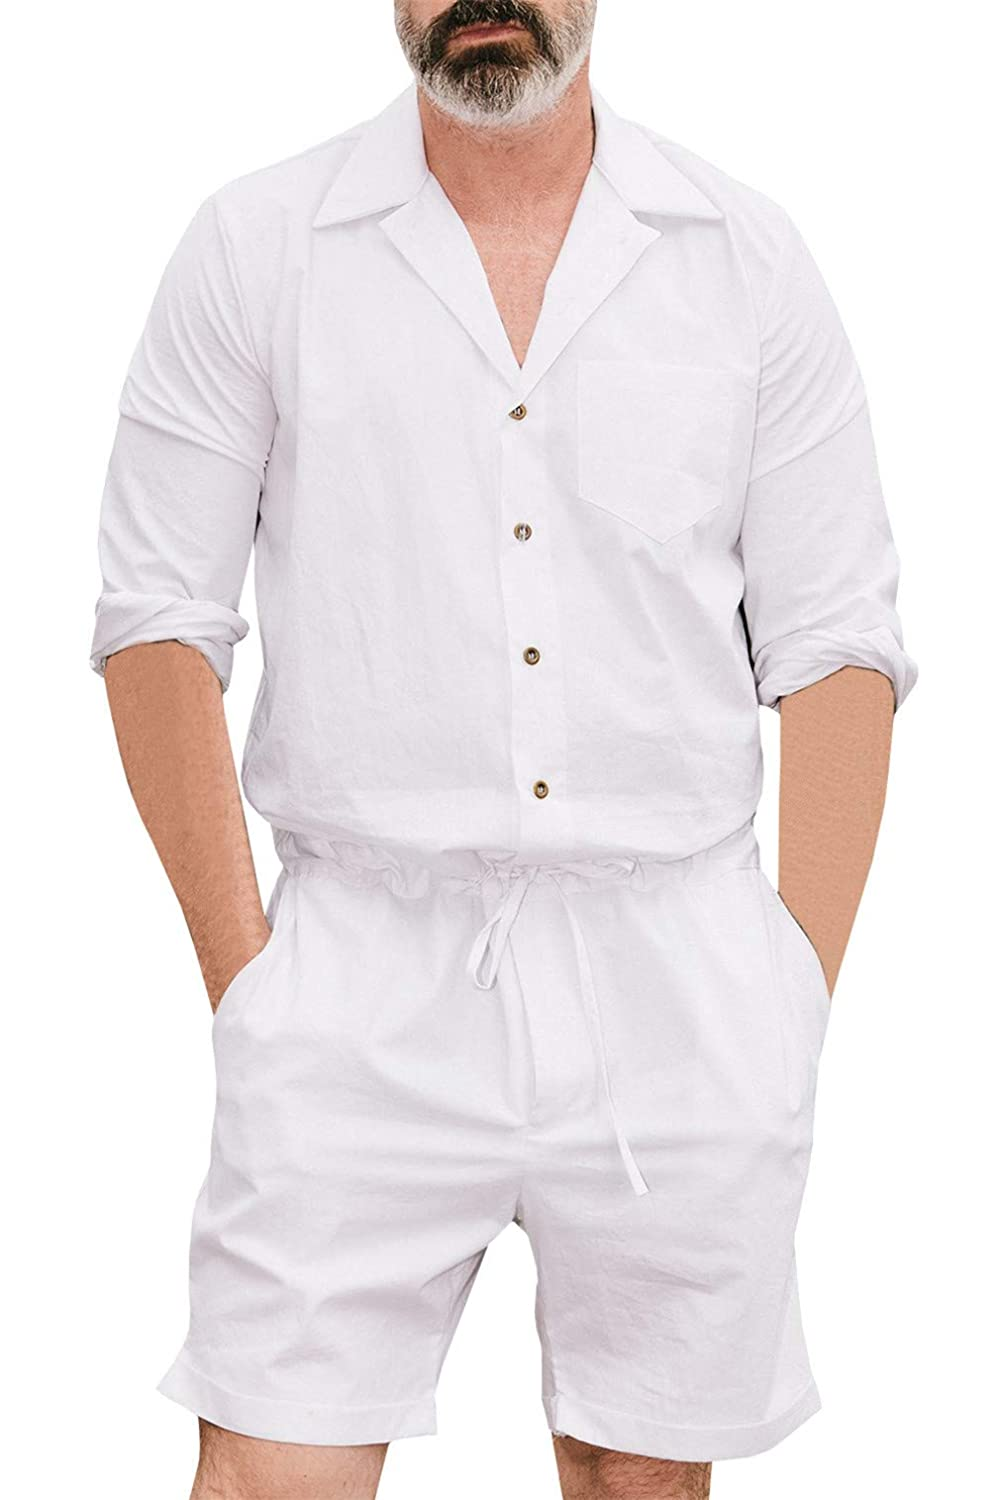 Men Short Long Sleeve Jumpsuit Casual Slim Fit Adjustable Waist Rompers Overall Meihuida